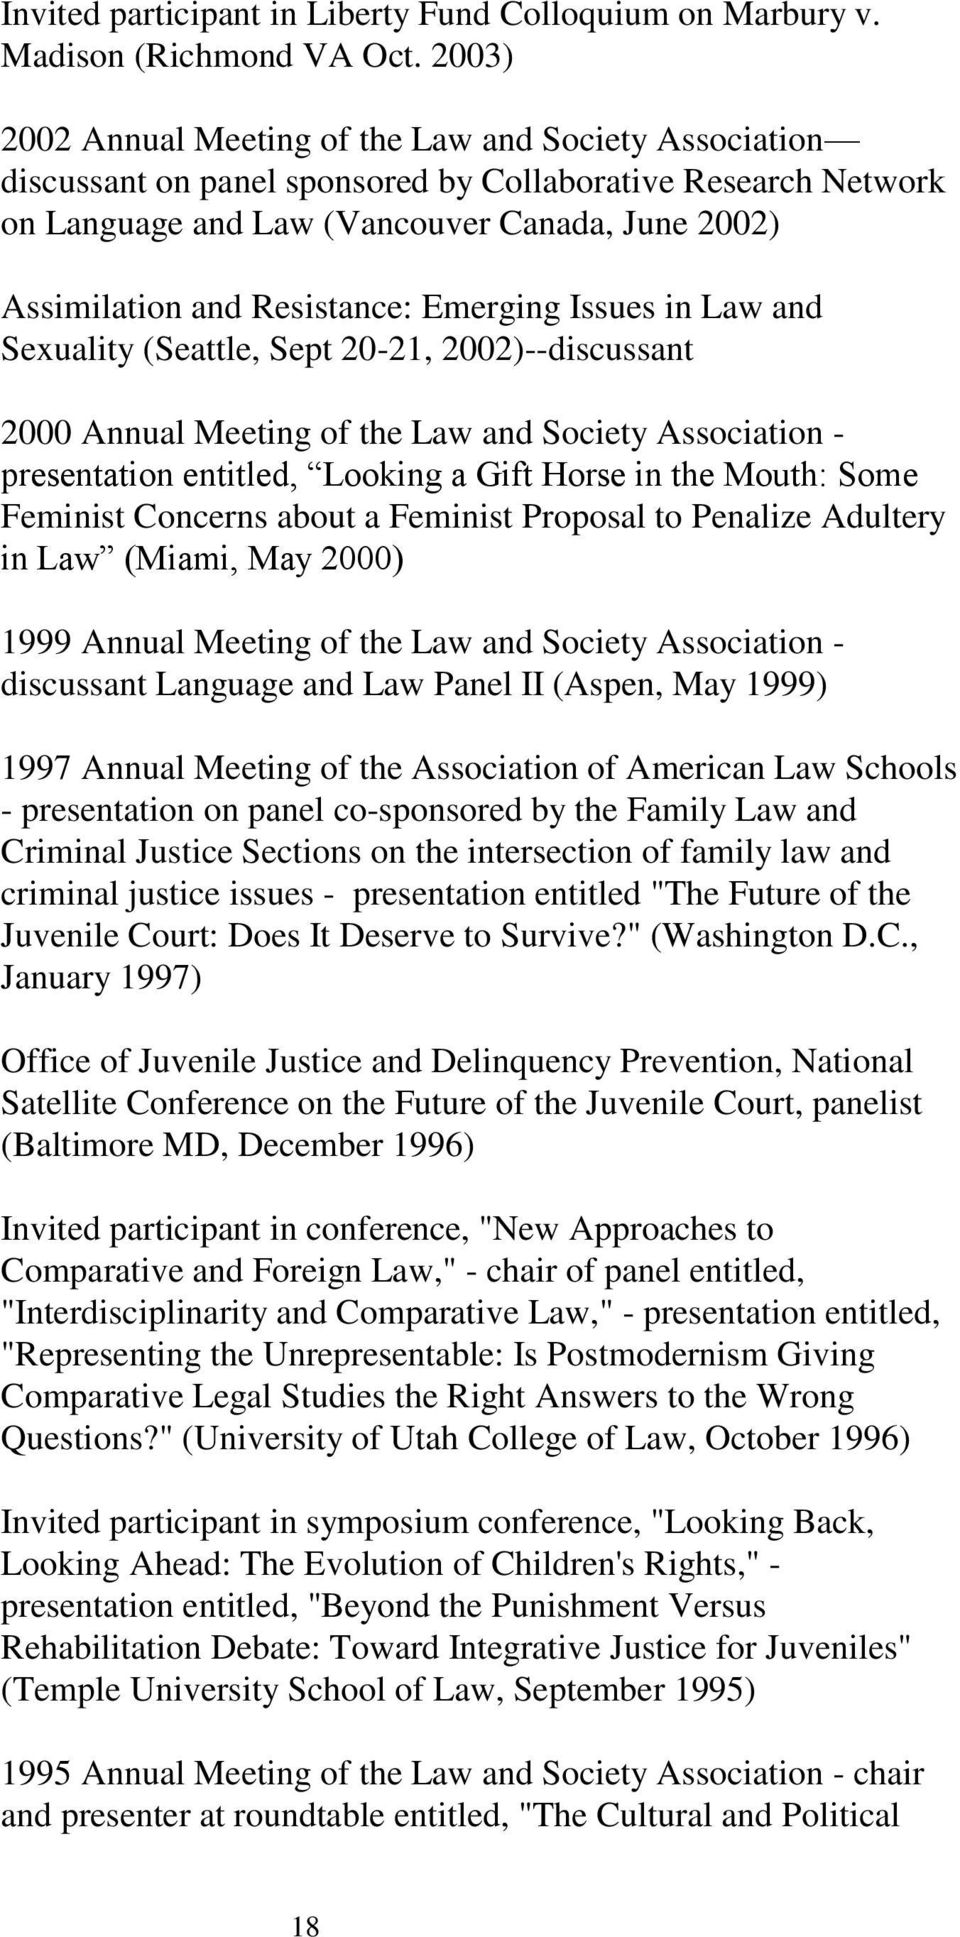 Resistance: Emerging Issues in Law and Sexuality (Seattle, Sept 20-21, 2002)--discussant 2000 Annual Meeting of the Law and Society Association - presentation entitled, Looking a Gift Horse in the